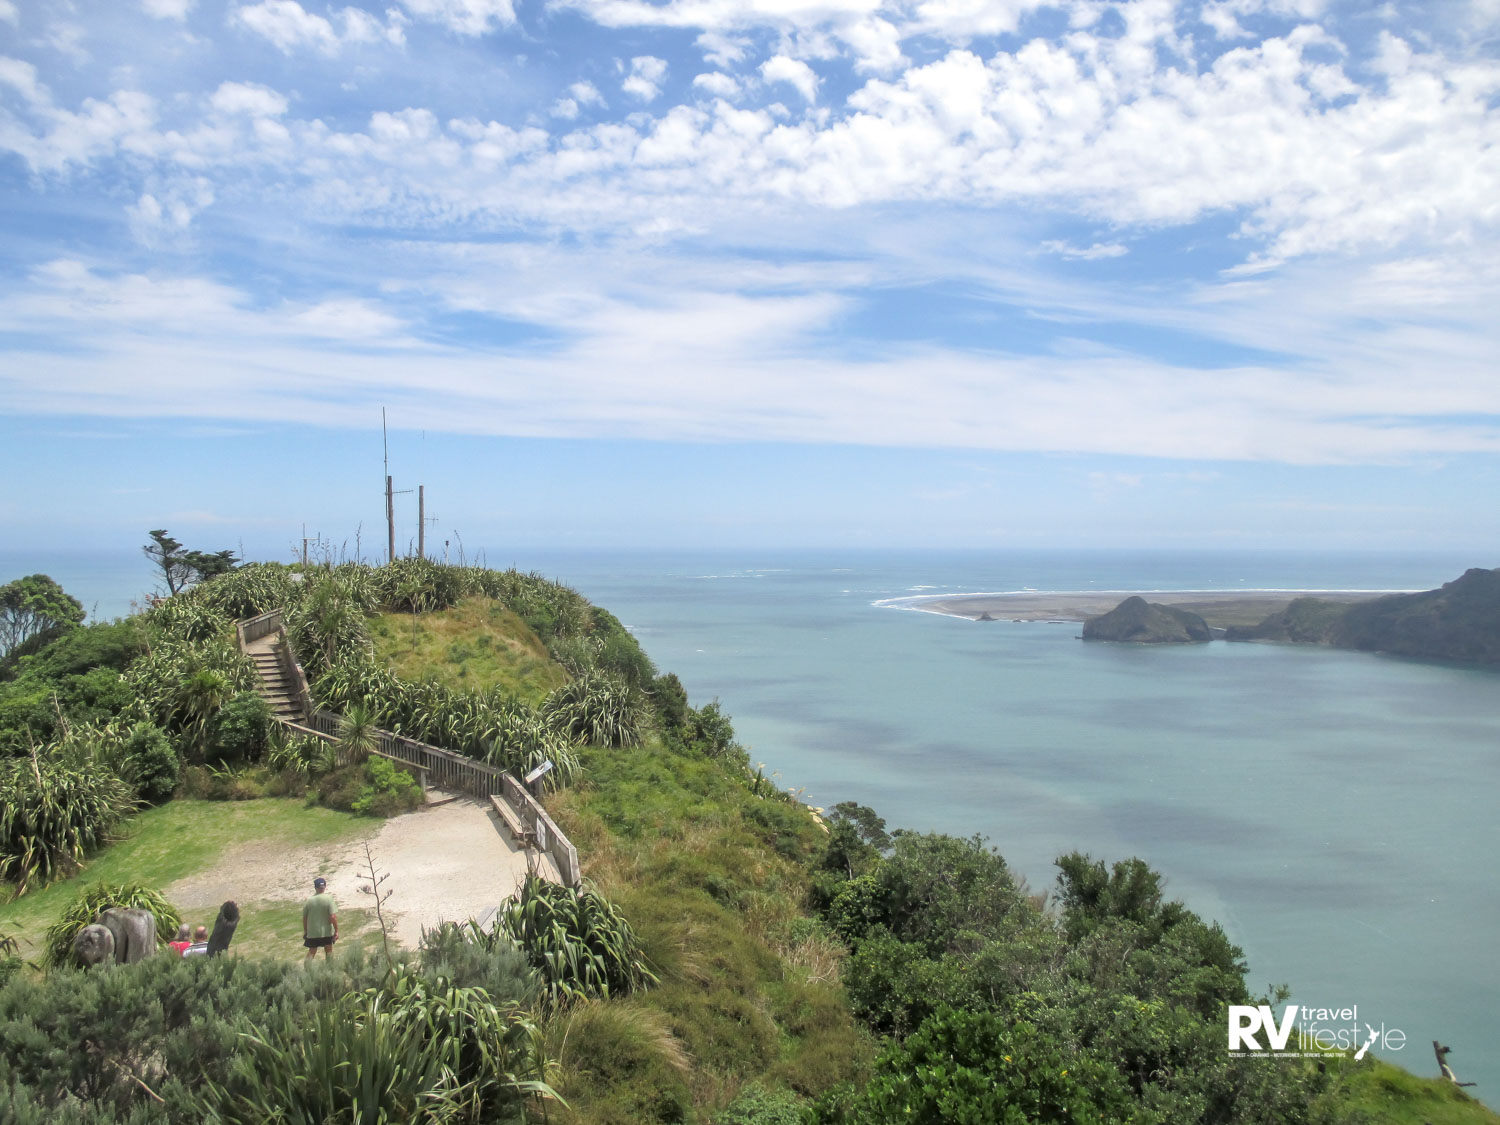 View from the old lighthouse of the entrance to Manukau Harbour with its tricky sandbar